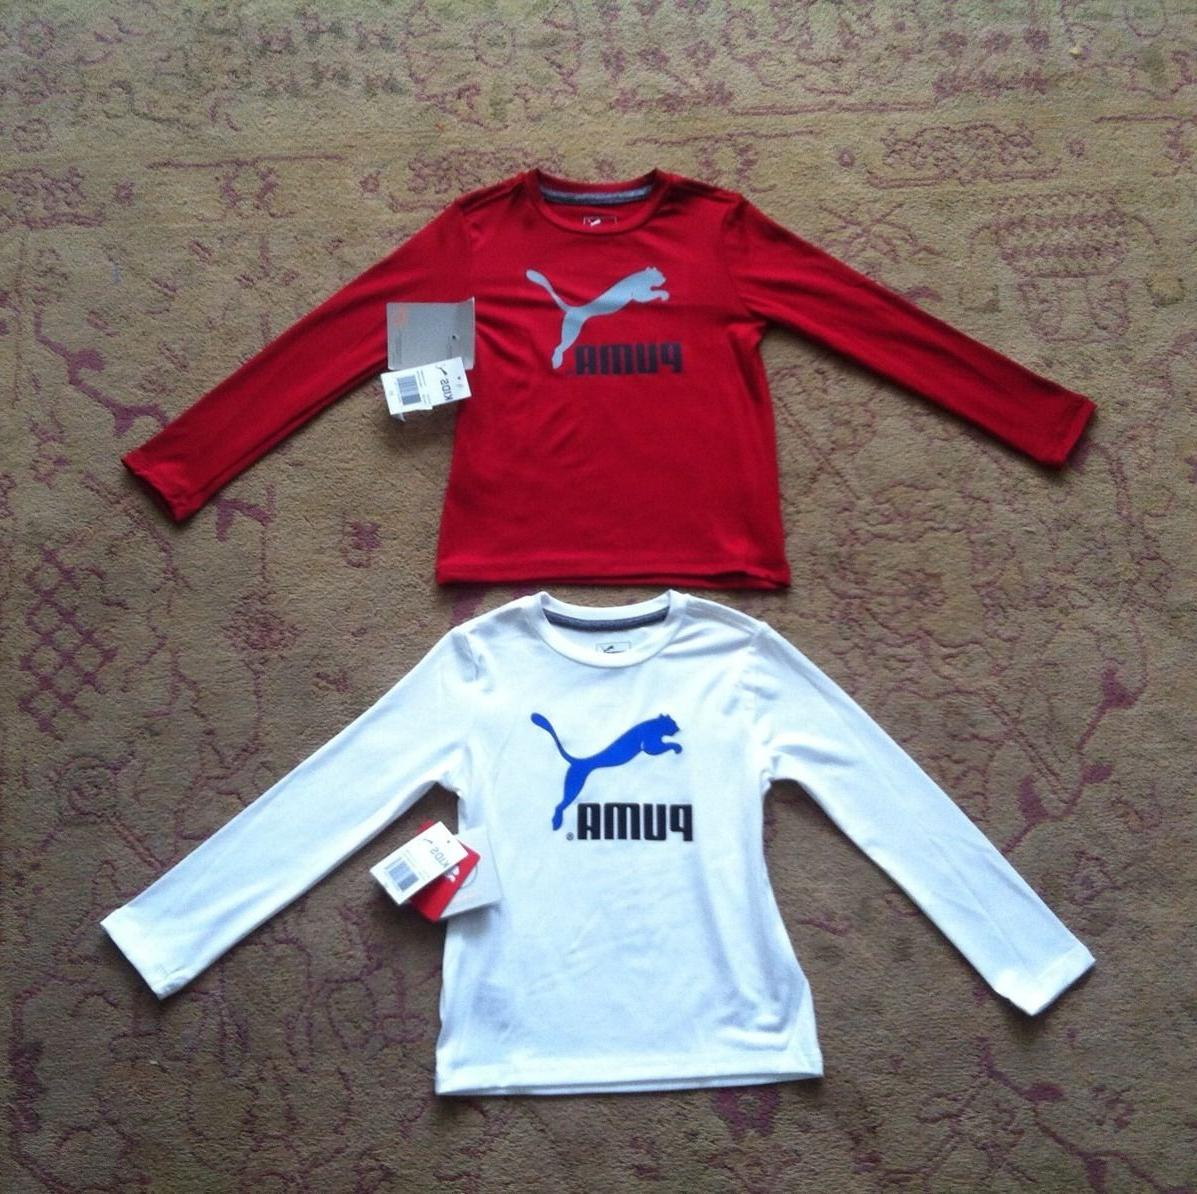 PUMA LONG SHIRTS- SIZE 3T, NWT